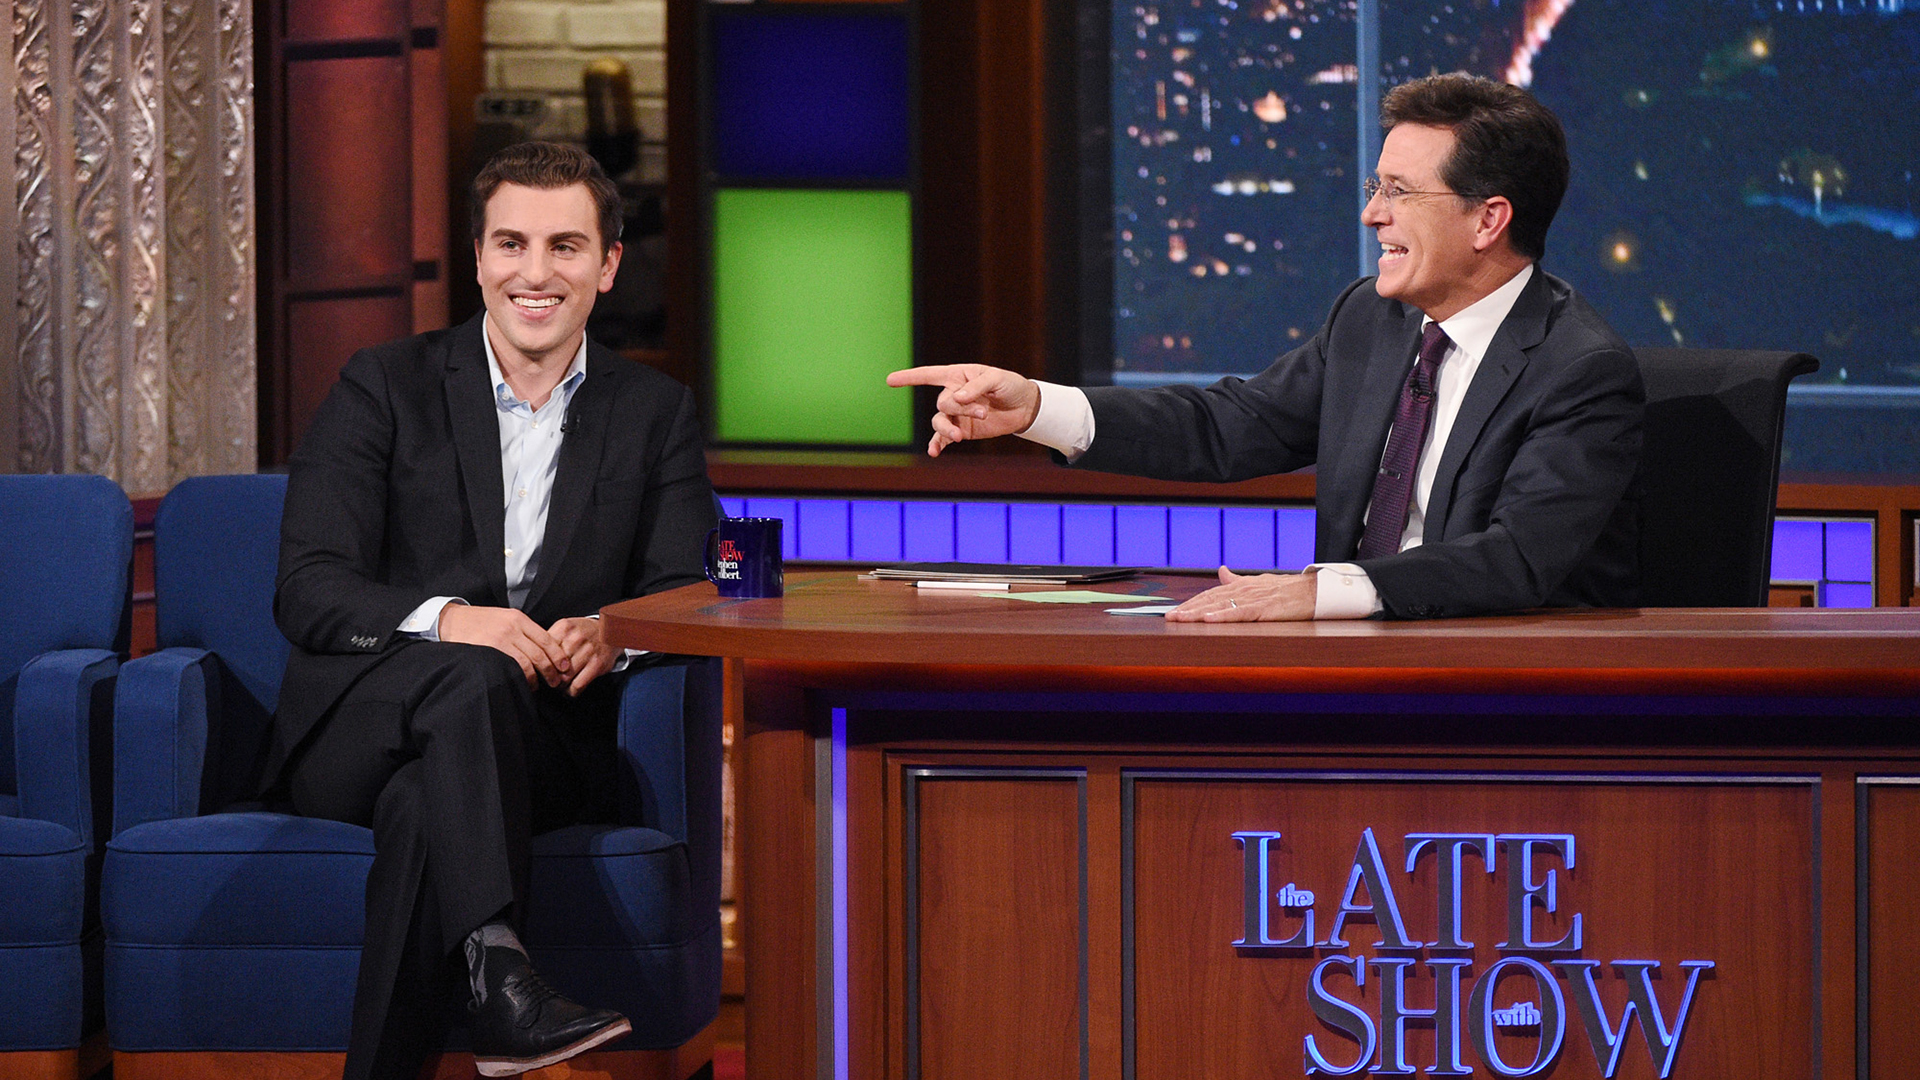 Brian Chesky and Stephen Colbert